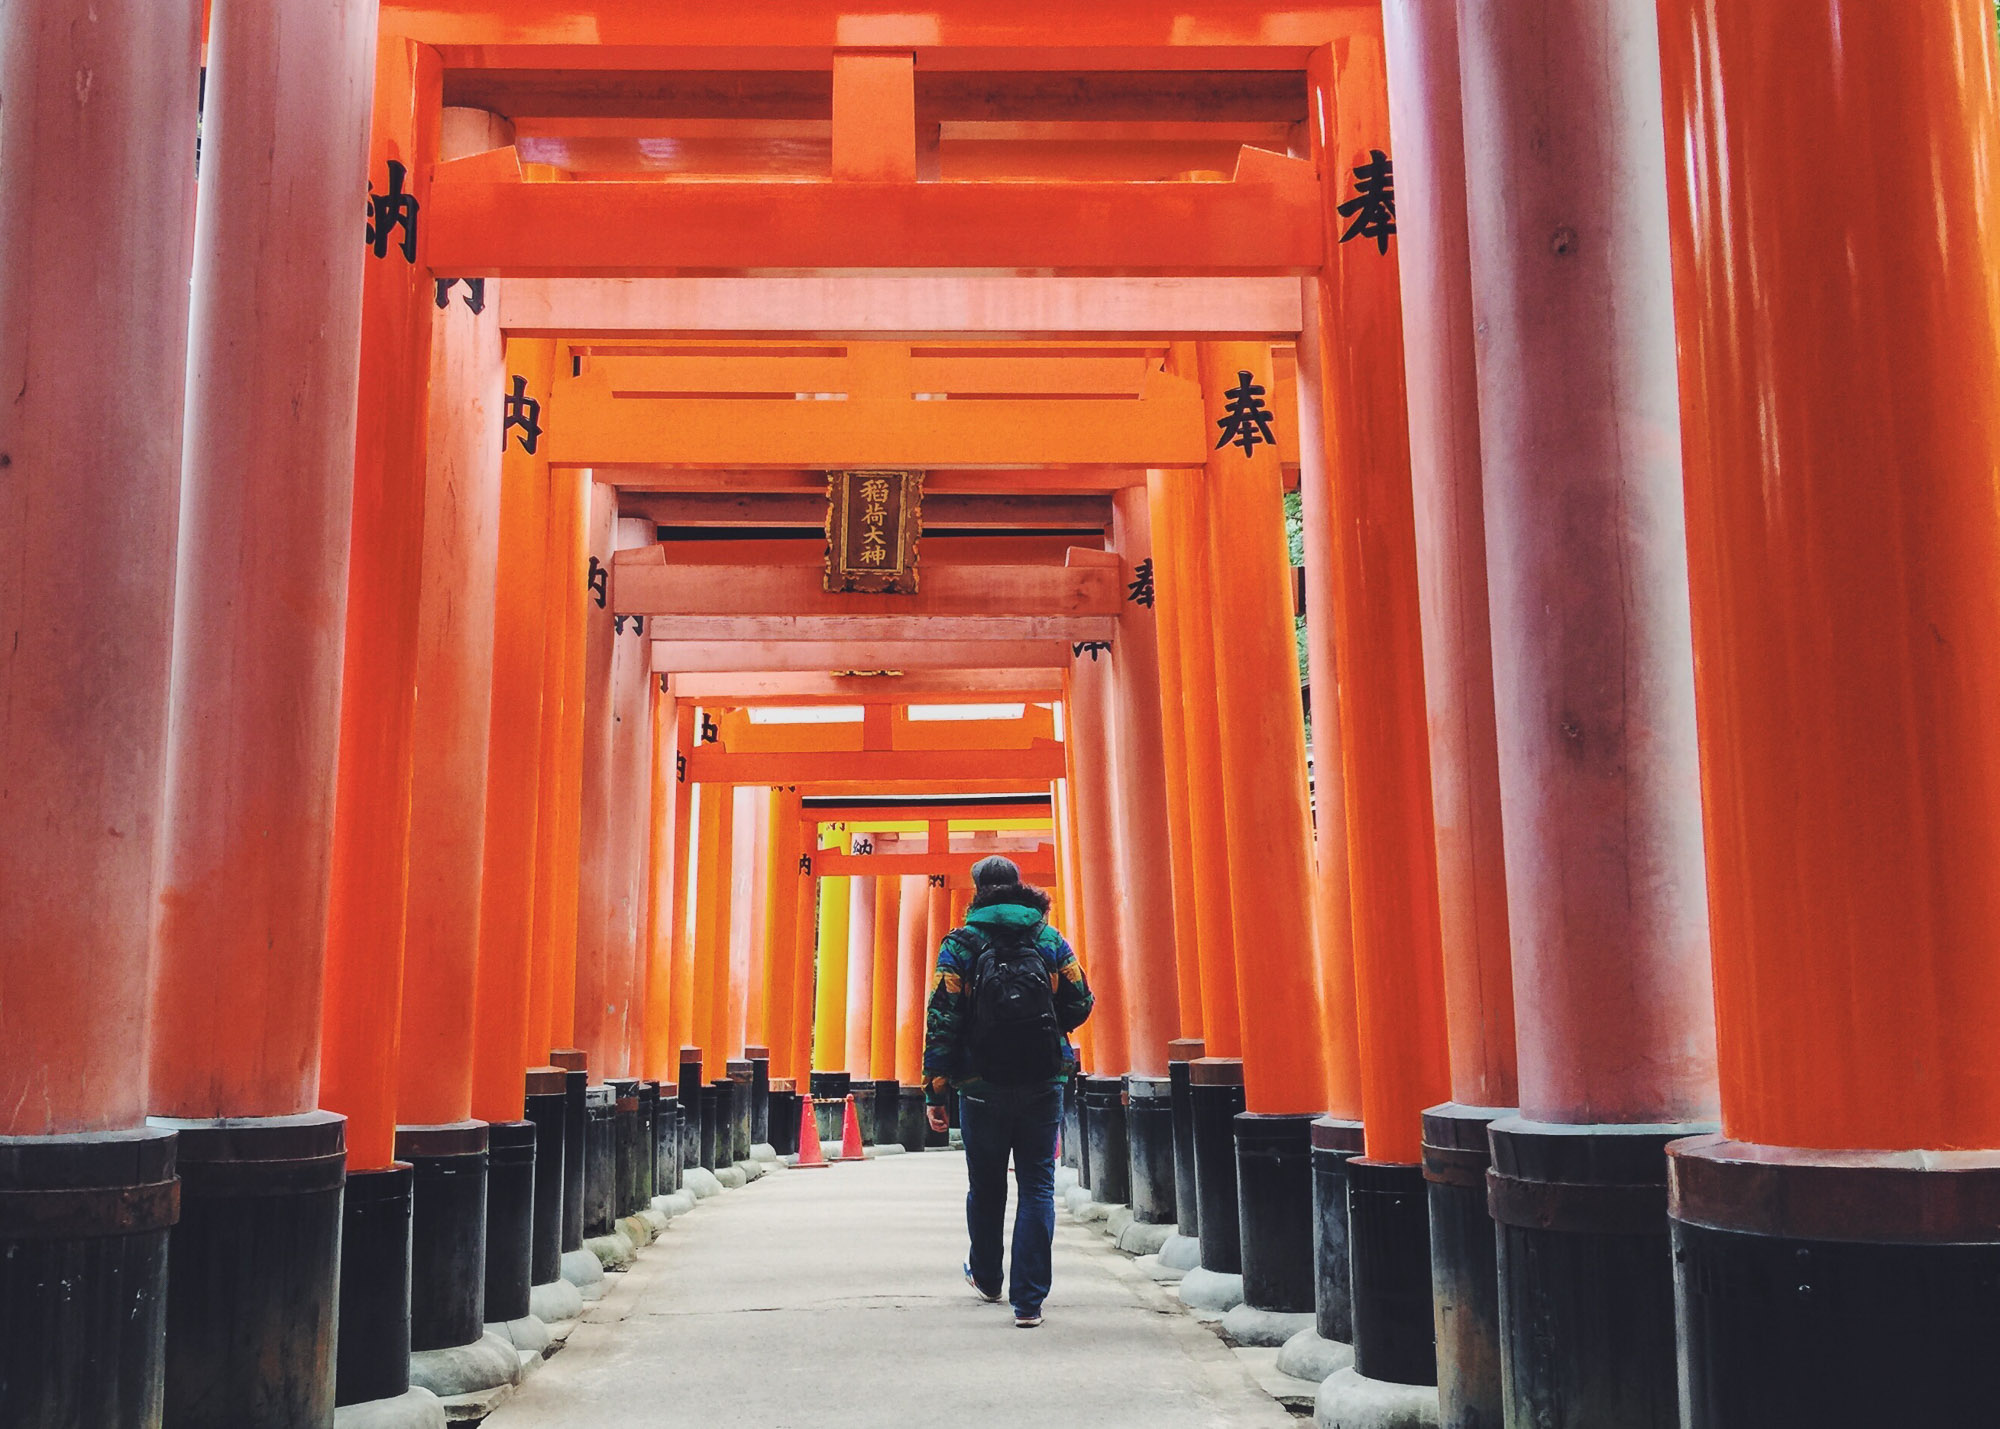 Instagram Japan - Steve walking in Kyoto